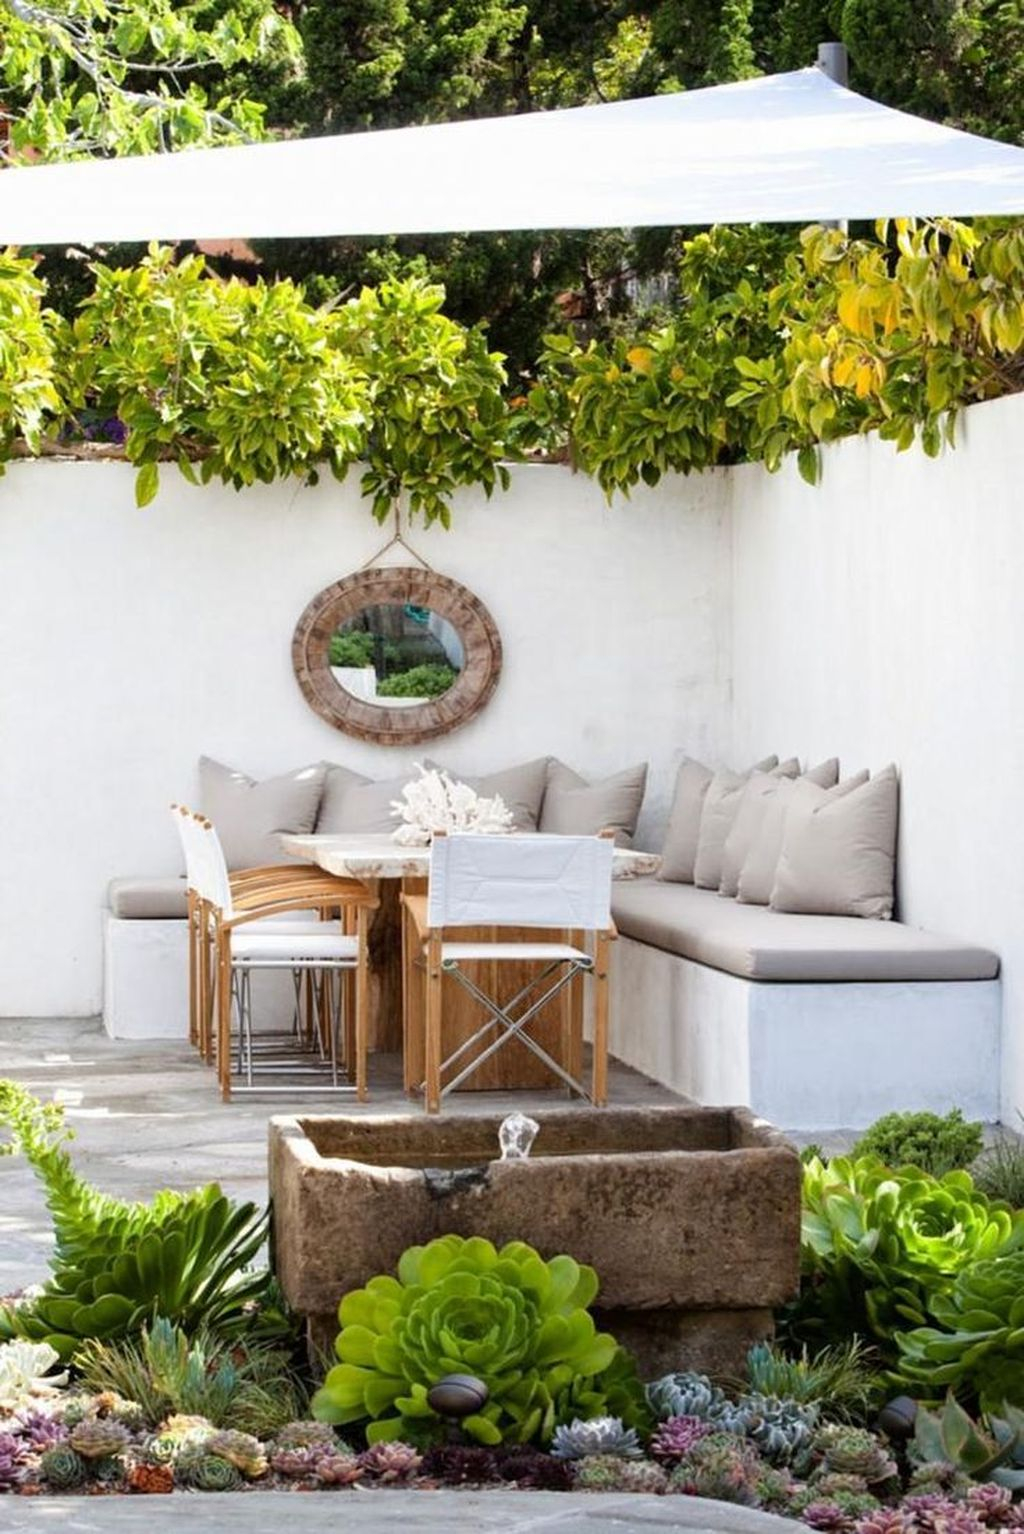 Amazing Garden Design Ideas For Small Space To Try 10